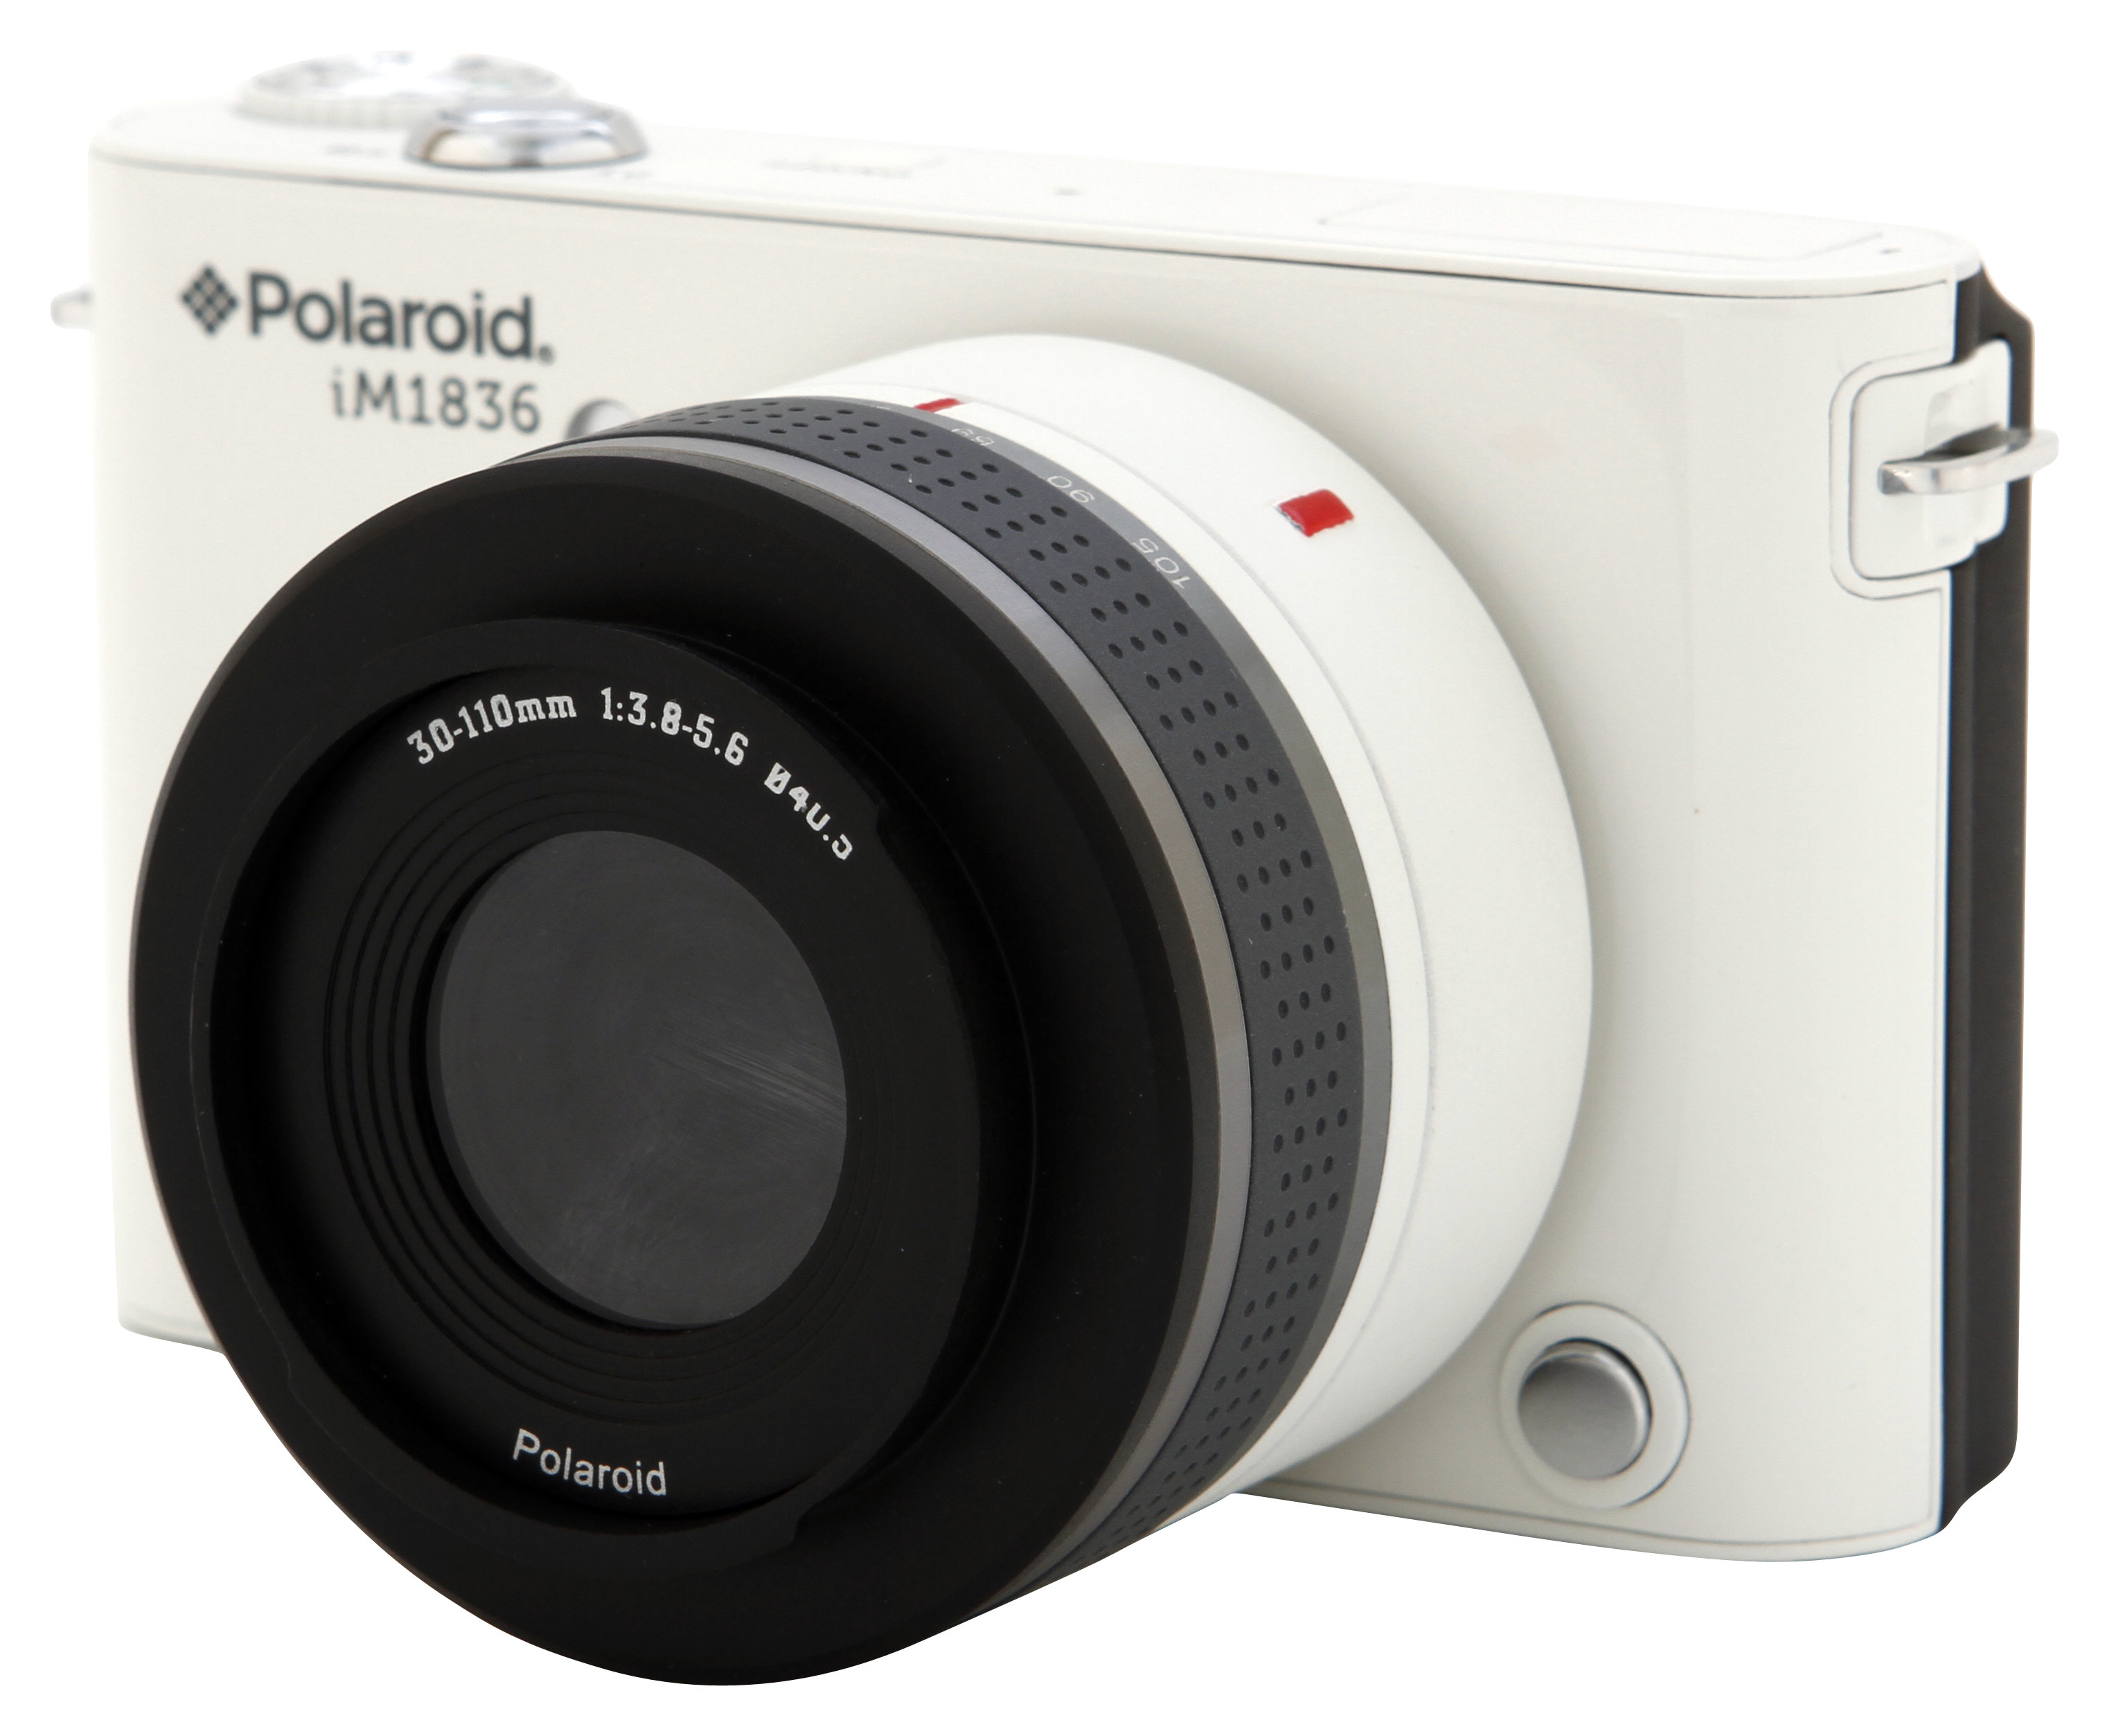 6dfaf70955a Polaroid offers first Android camera with interchangeable lenses ...